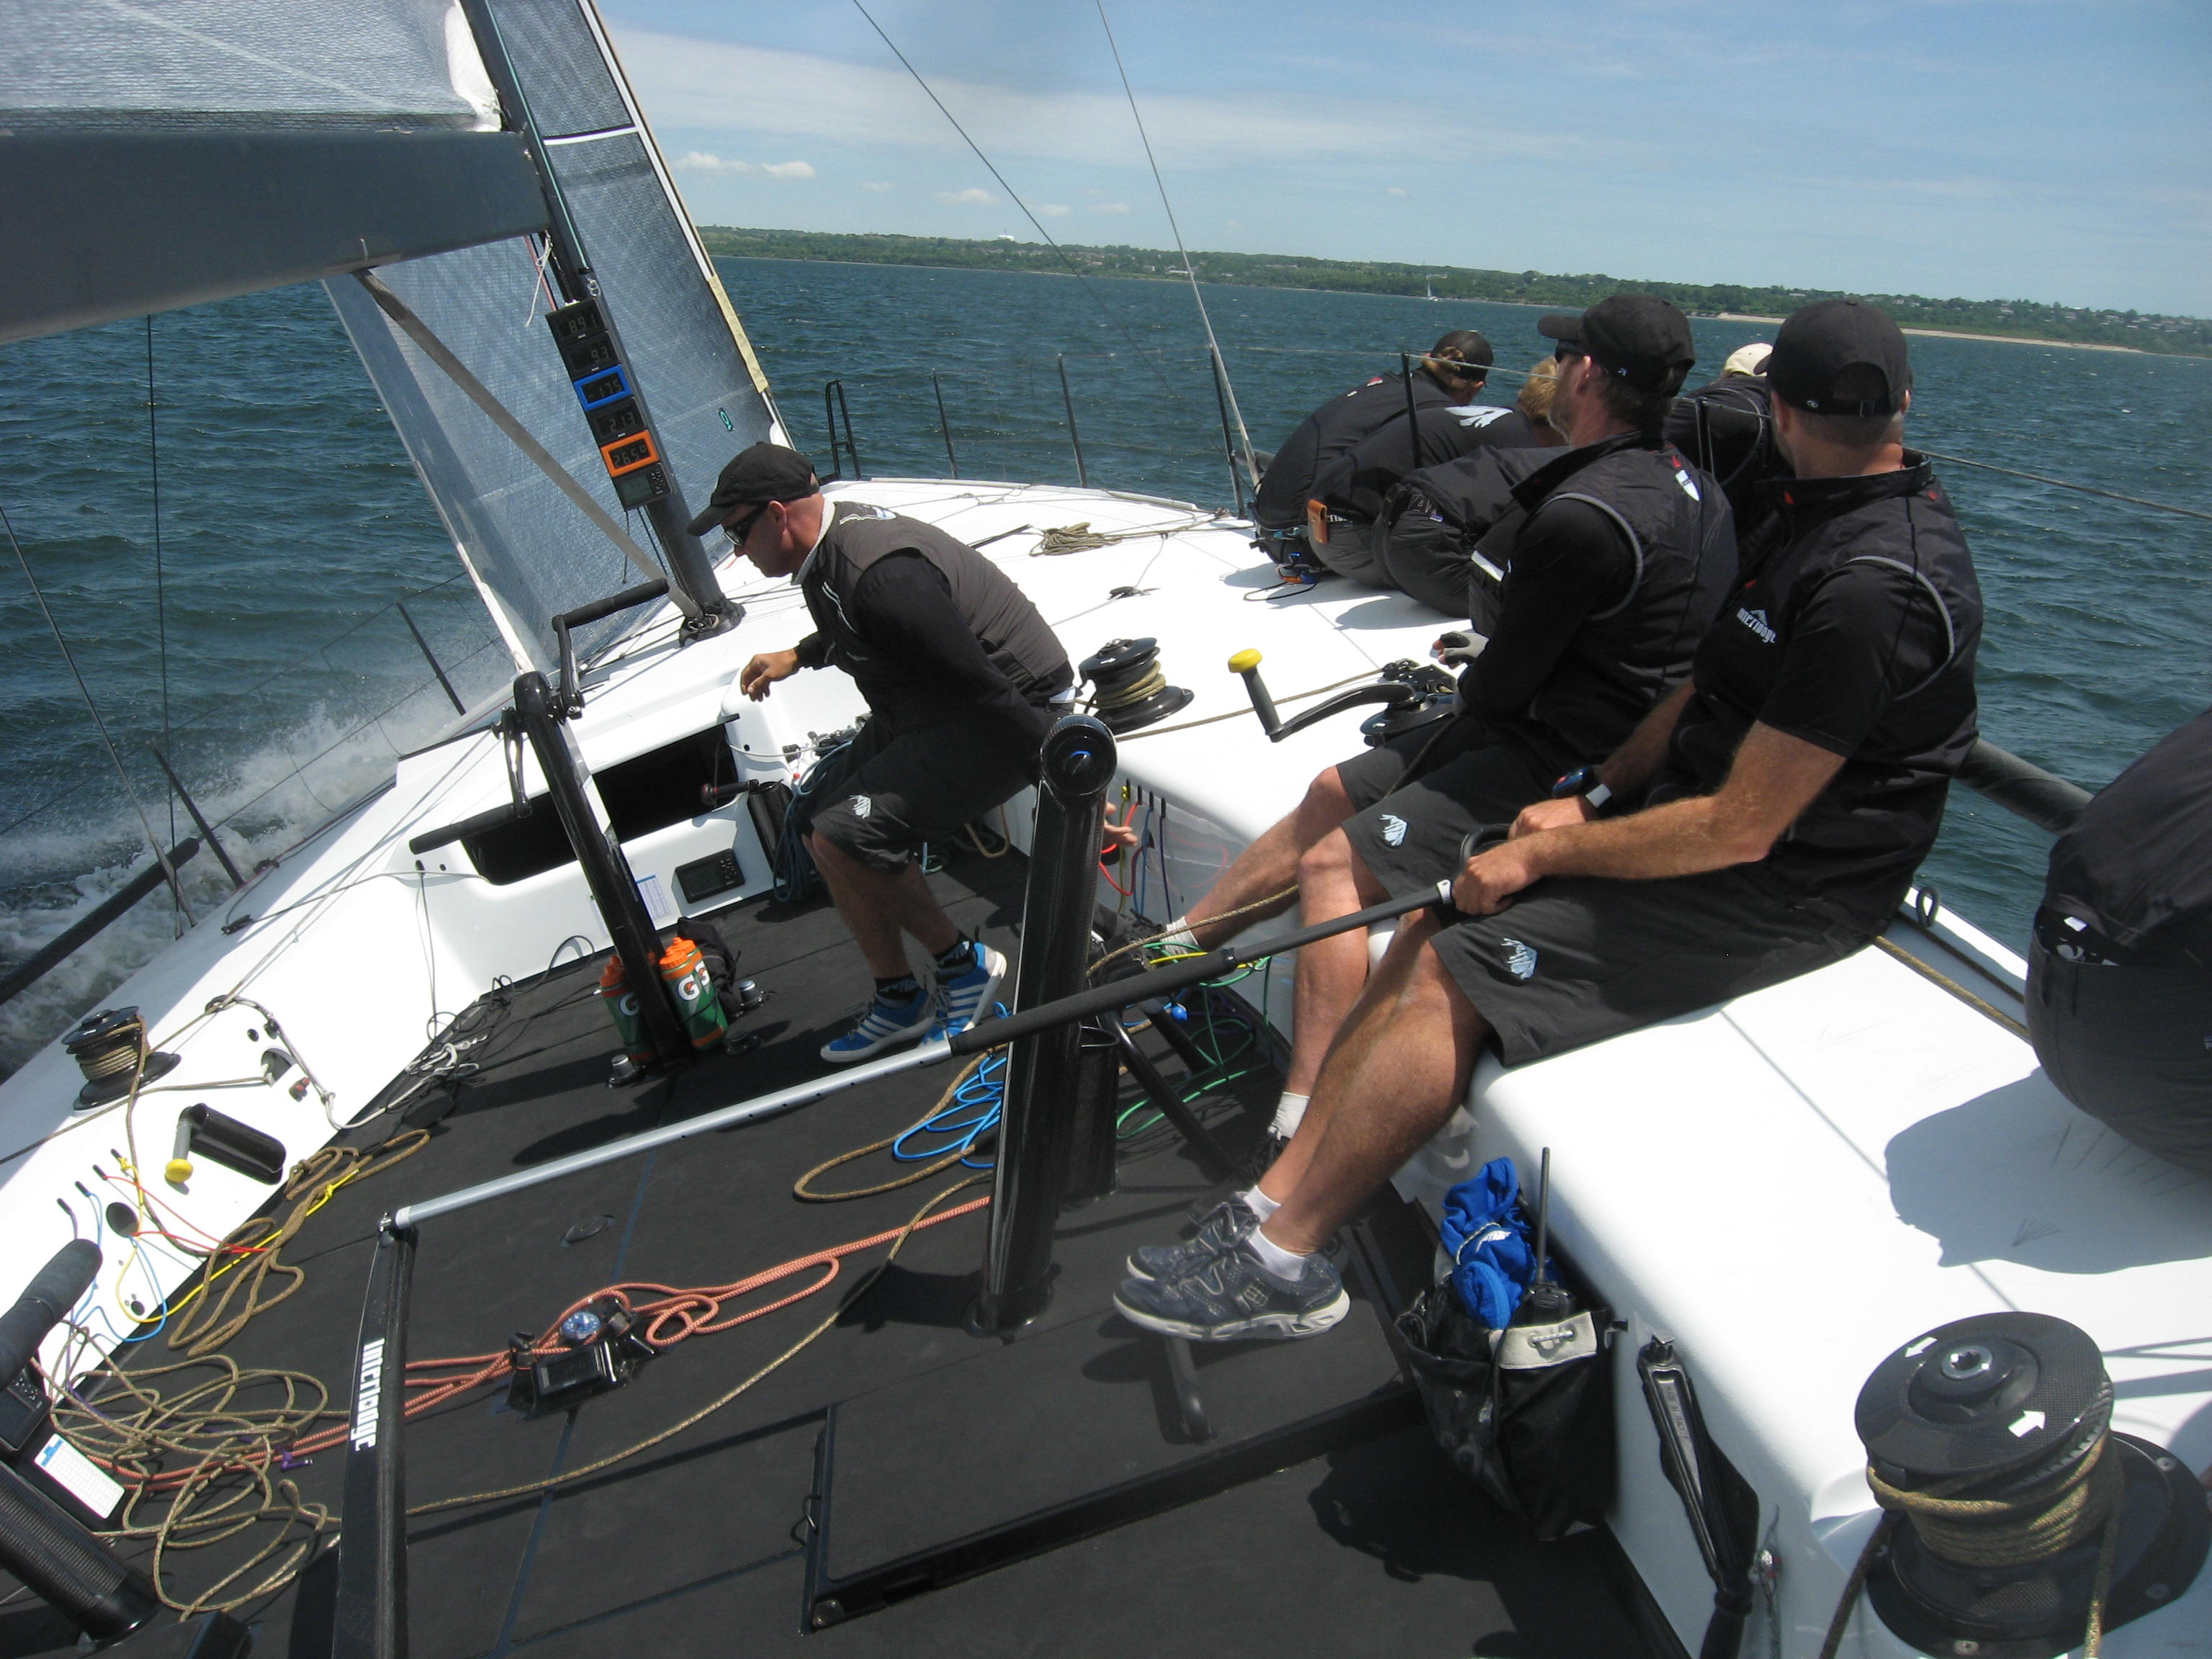 A TP 52 out practicing on Narragansett Bay prior to the NYYC Annual regatta